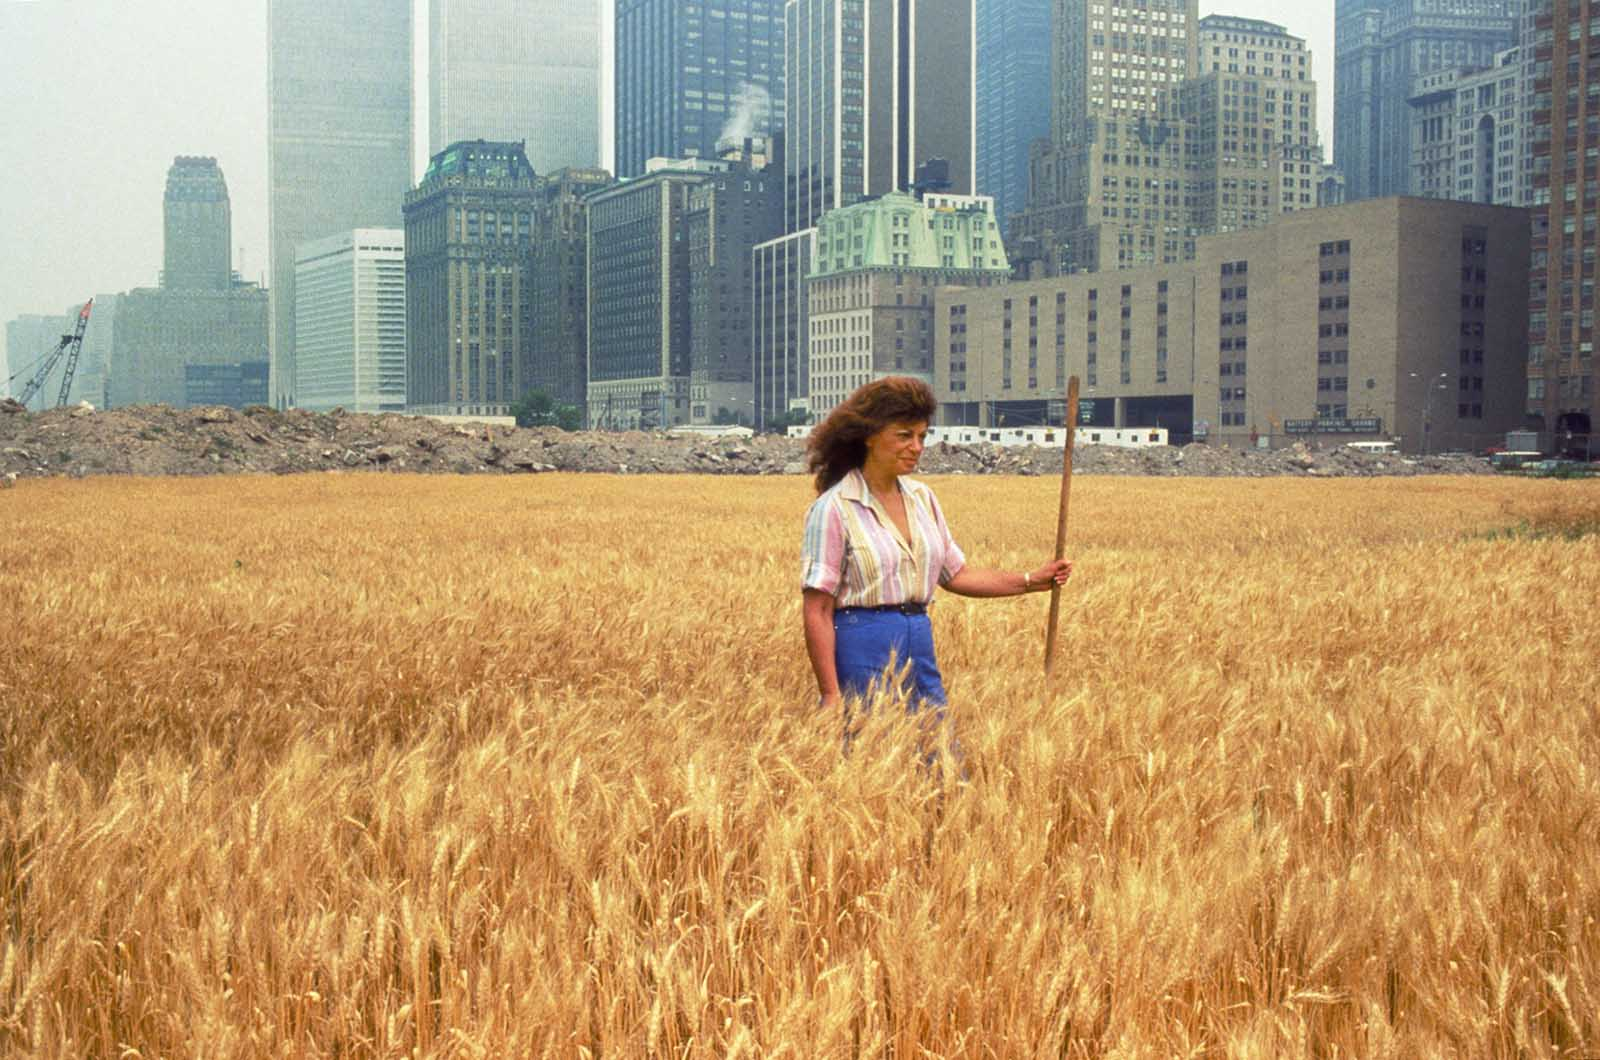 In 1982 Agnes Denes cultivated, grew, and harvested a two-acre wheatfield in downtown Manhattan.